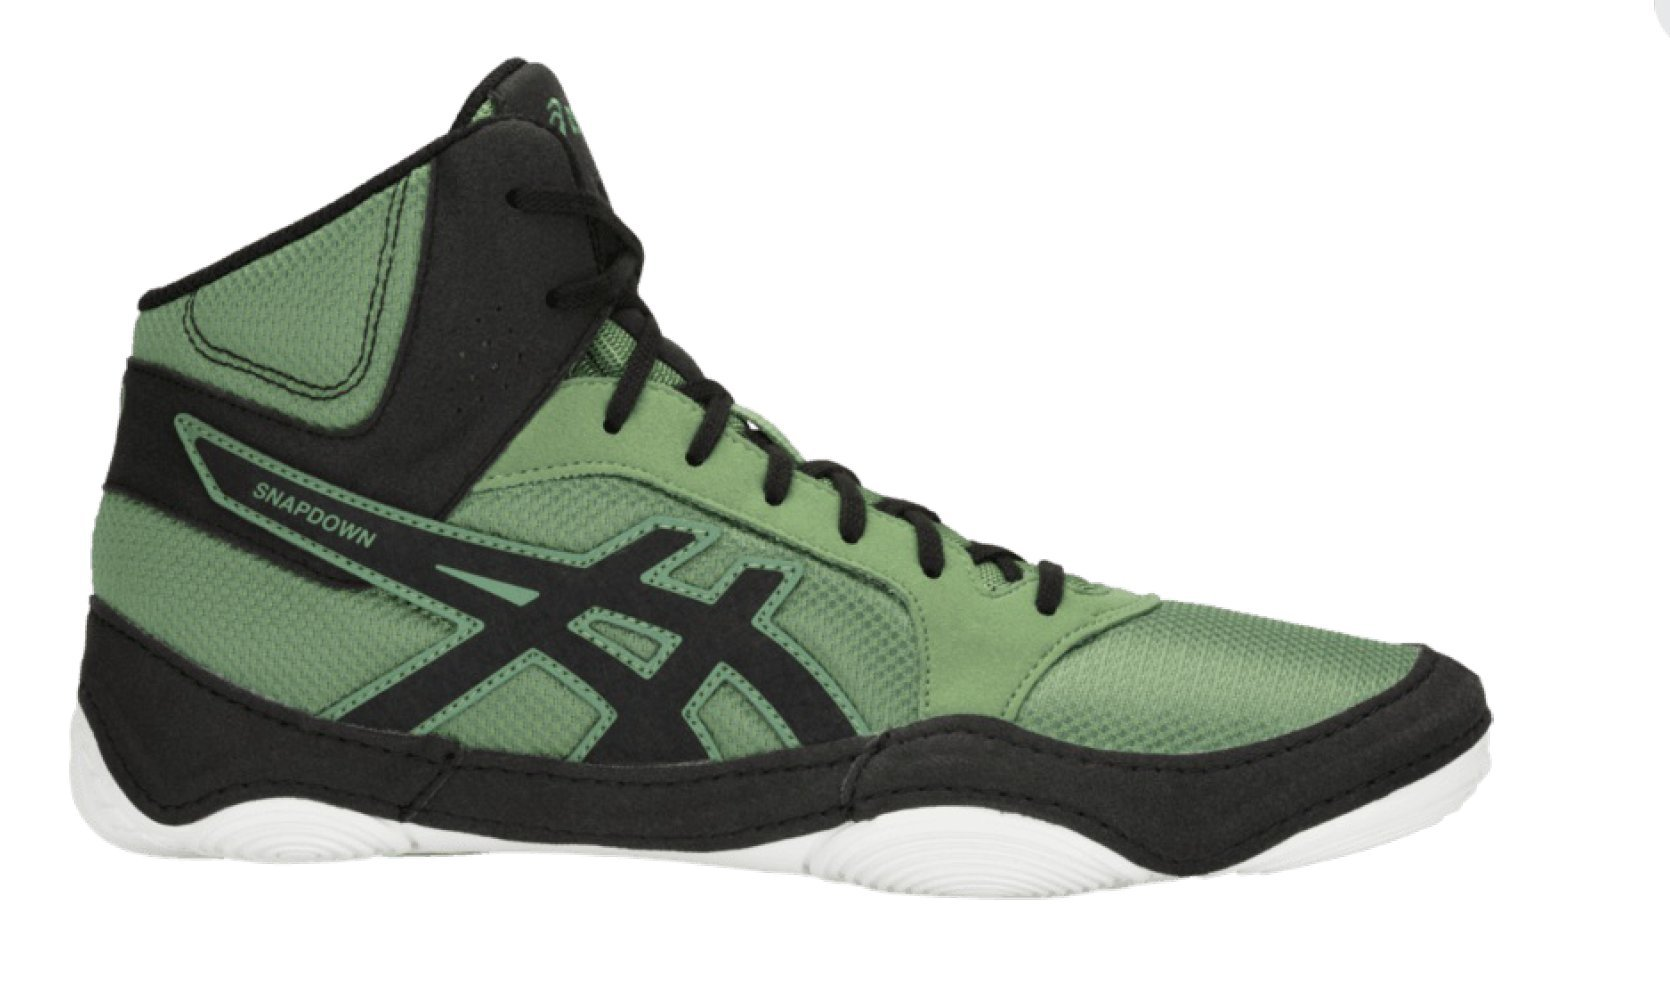 ASICS Men's Snapdown 2 Wrestling Shoe, Cedar Green/Black, Size 7